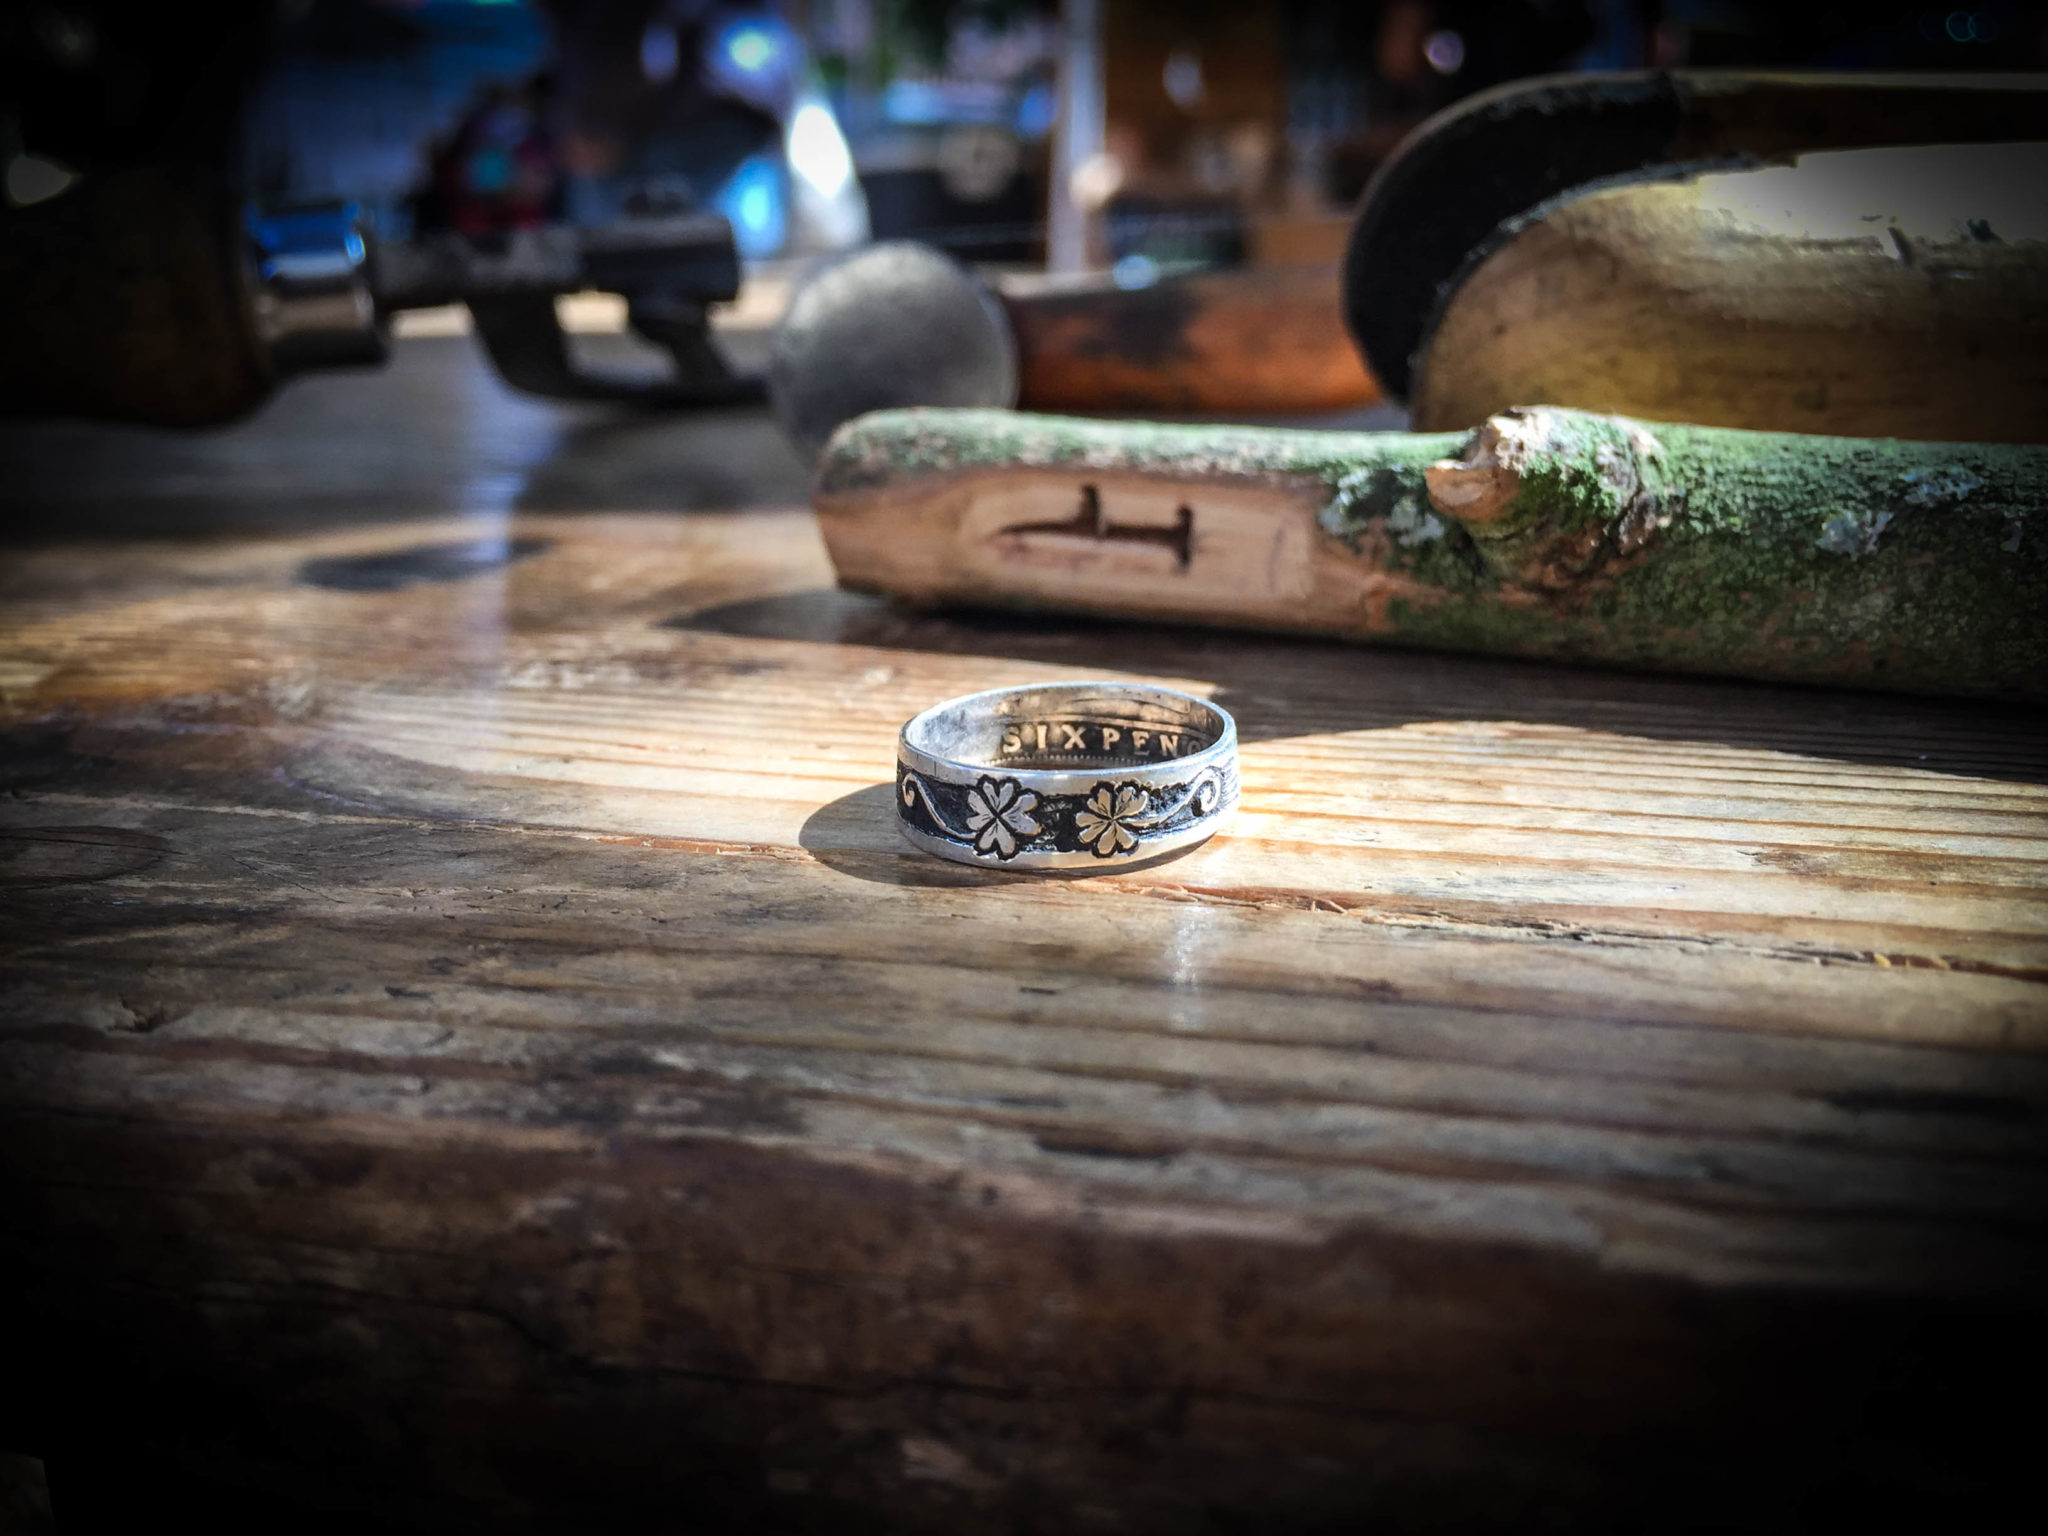 The goodluck silver coin rings